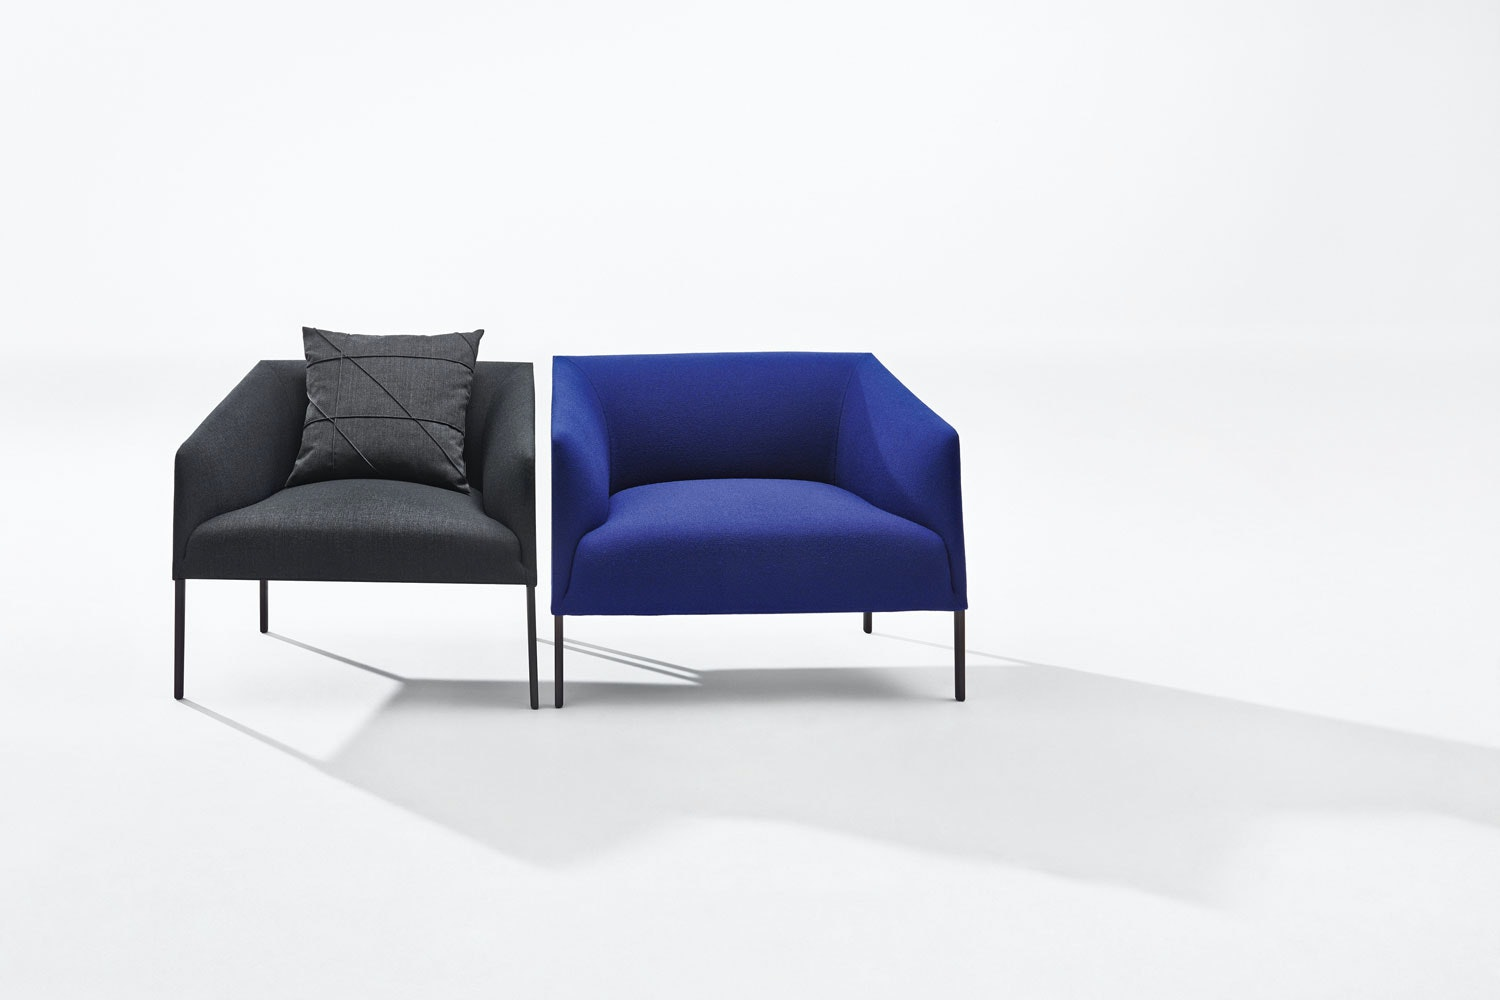 SAARI by Lievore Altherr Molina for Arper